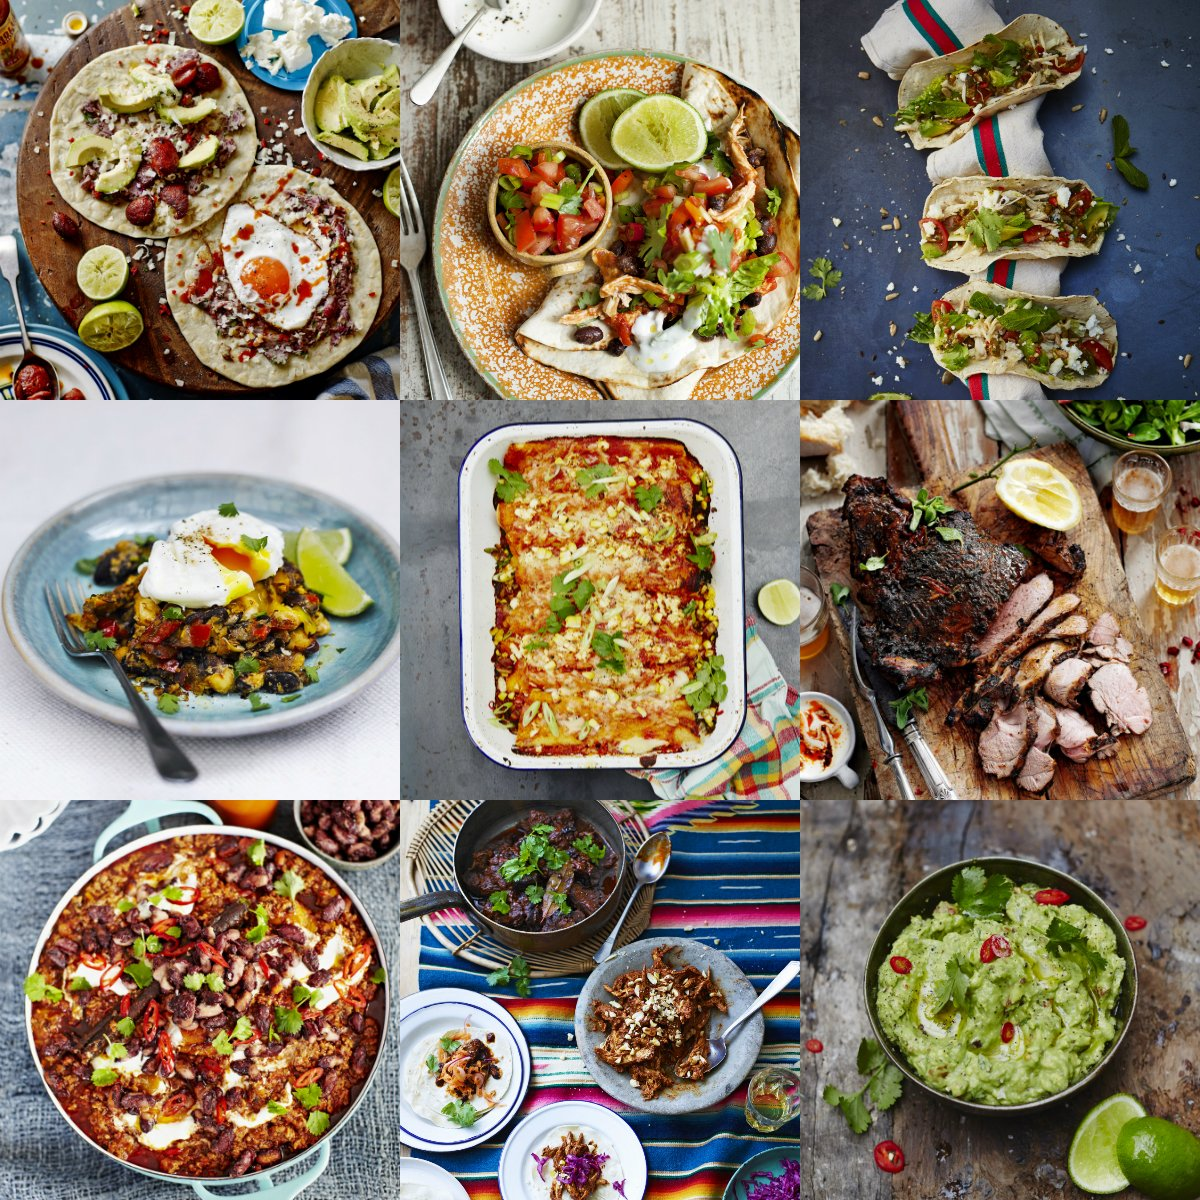 Honouring #CincodeMayo with these Mexican-inspired favourites of mine! https://t.co/YRTukcDVKt https://t.co/aJVc51LLMU